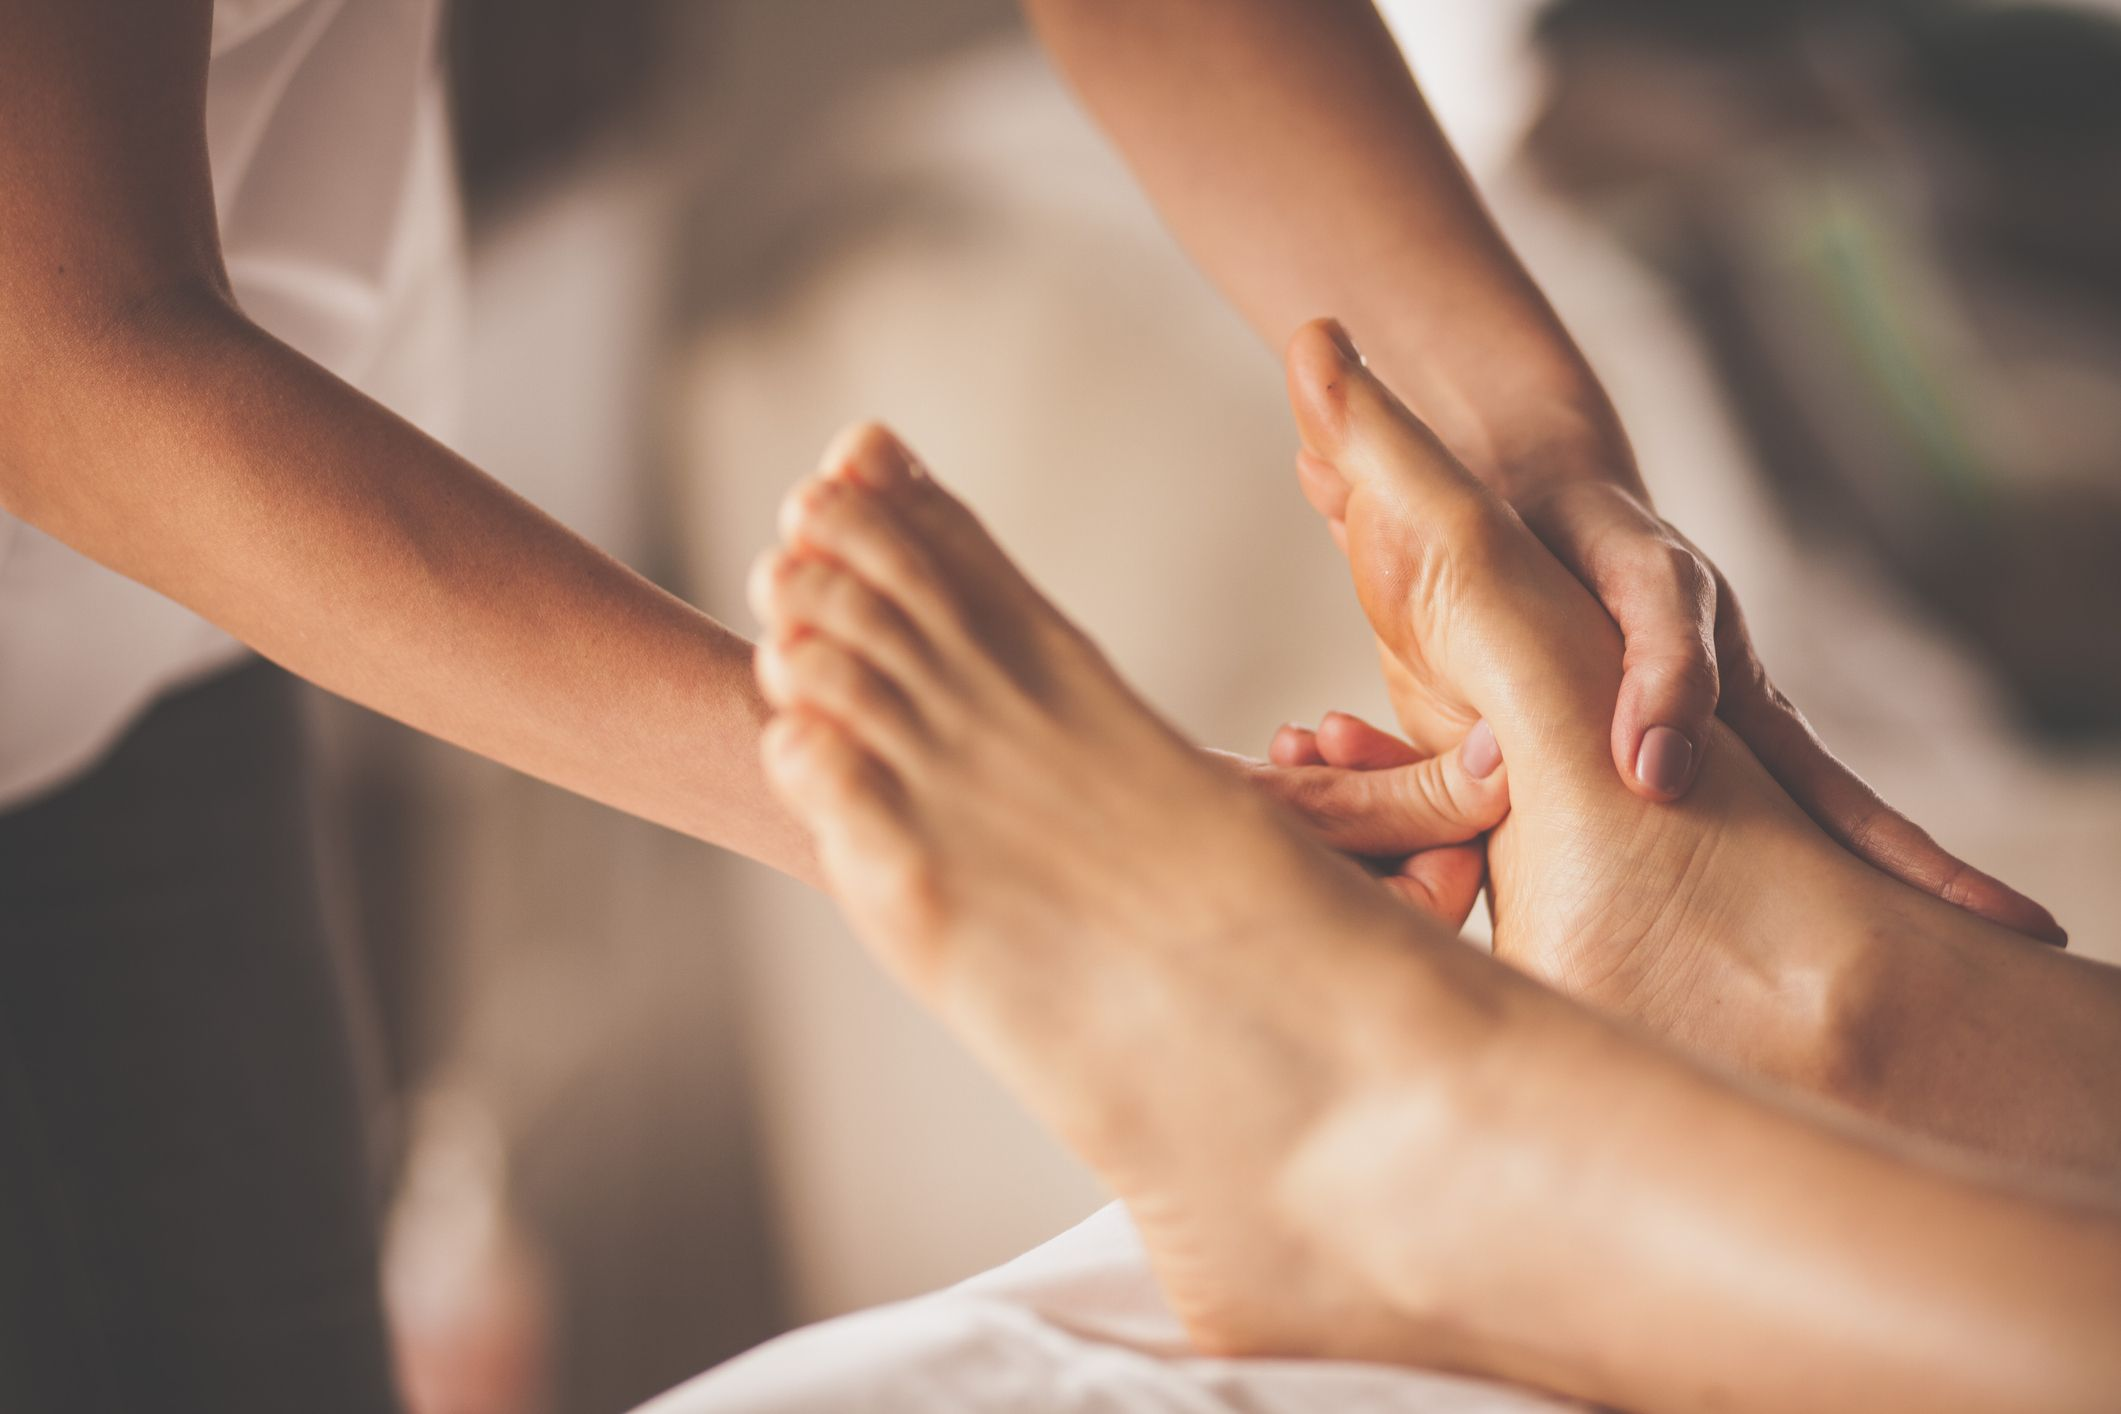 Reflexology: what is it and what are the health benefits?